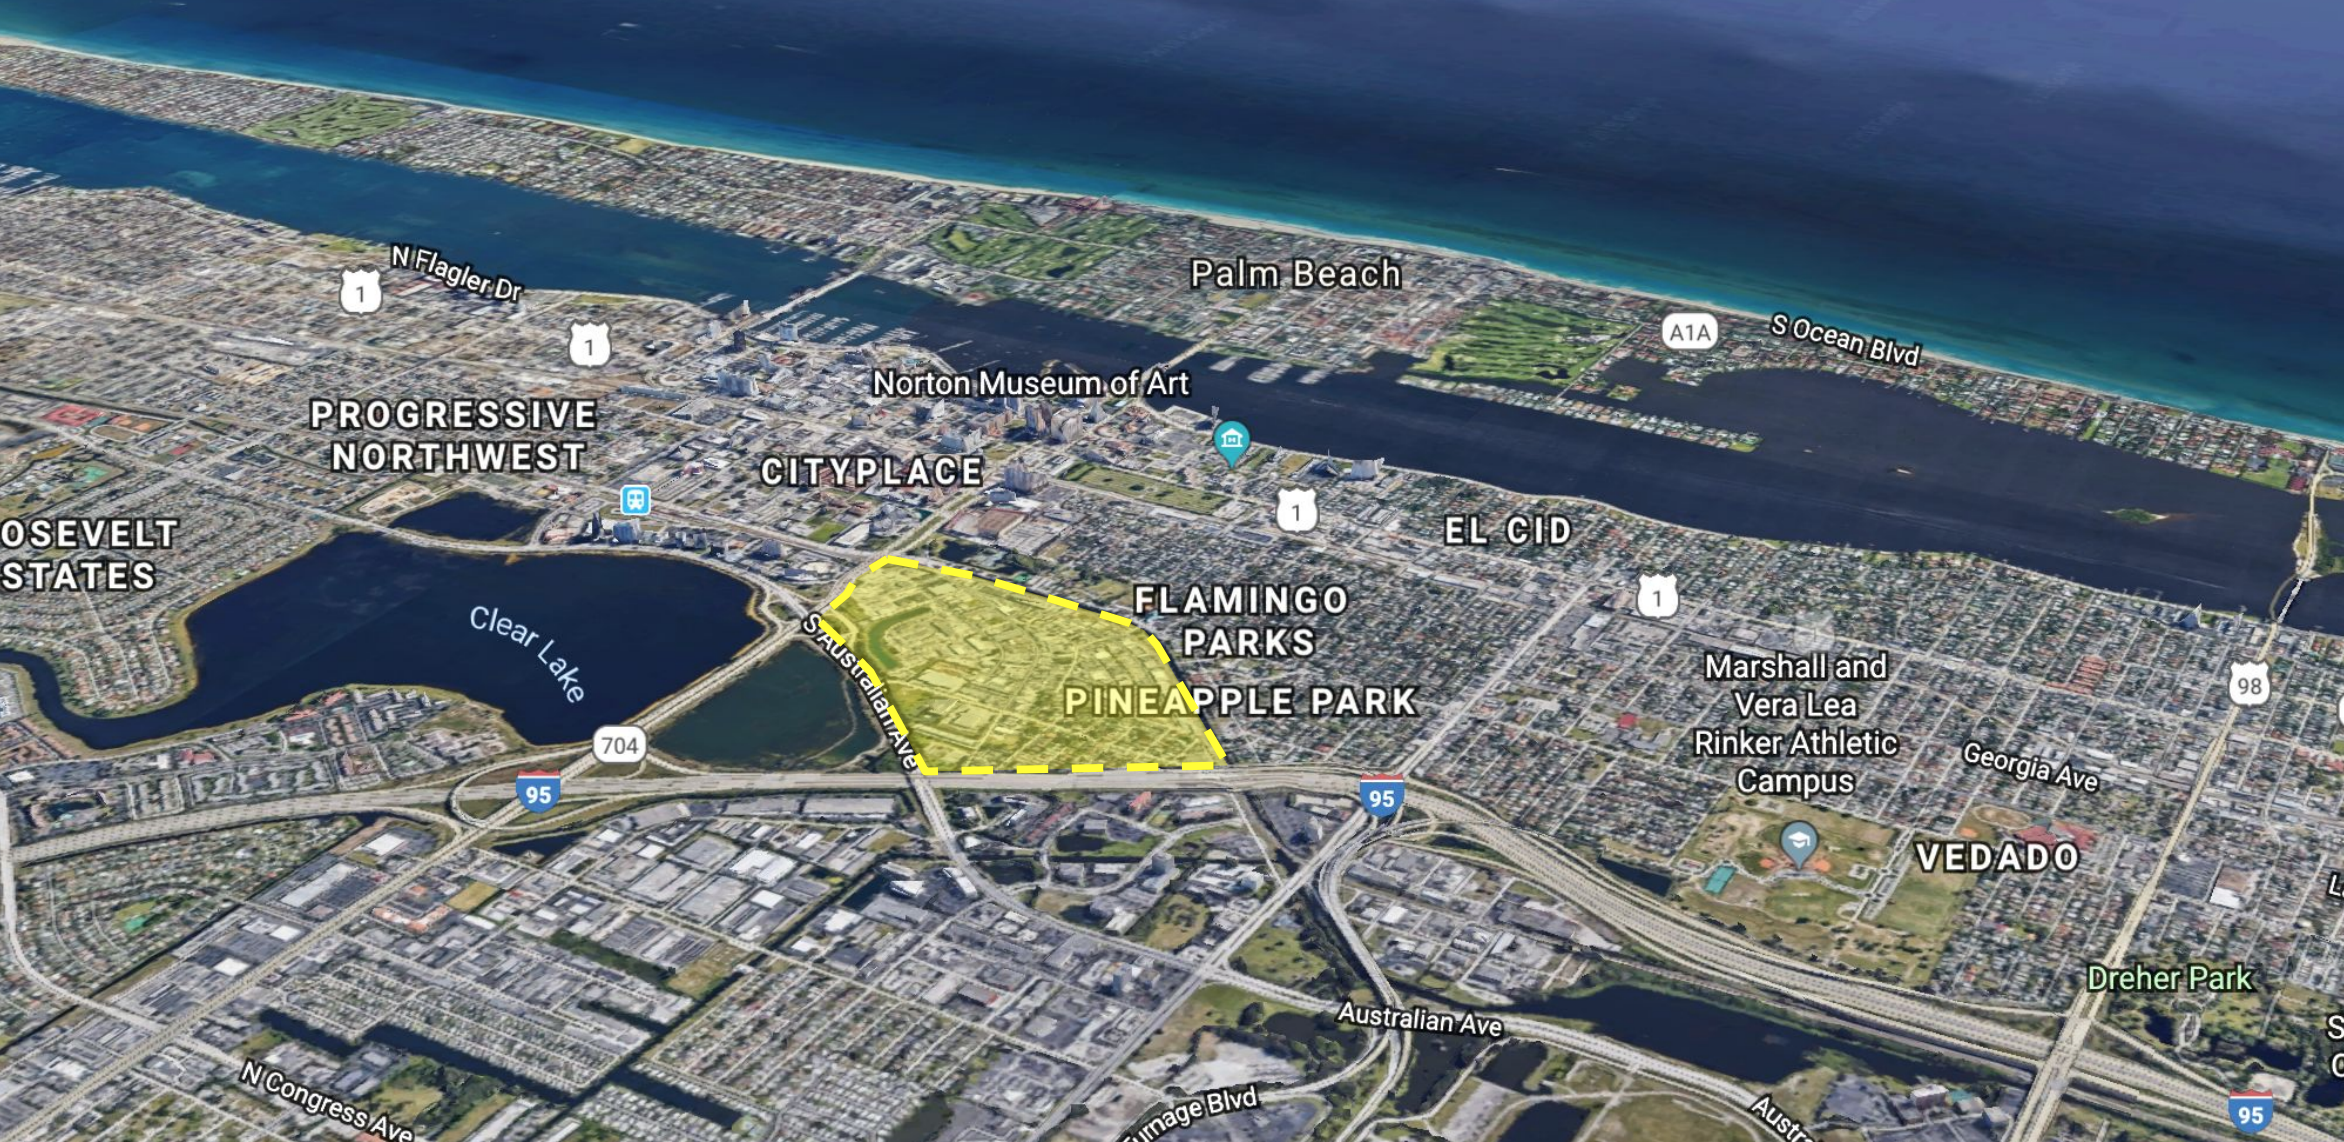 Commercial Real Estate and Development West Palm Beach Florida